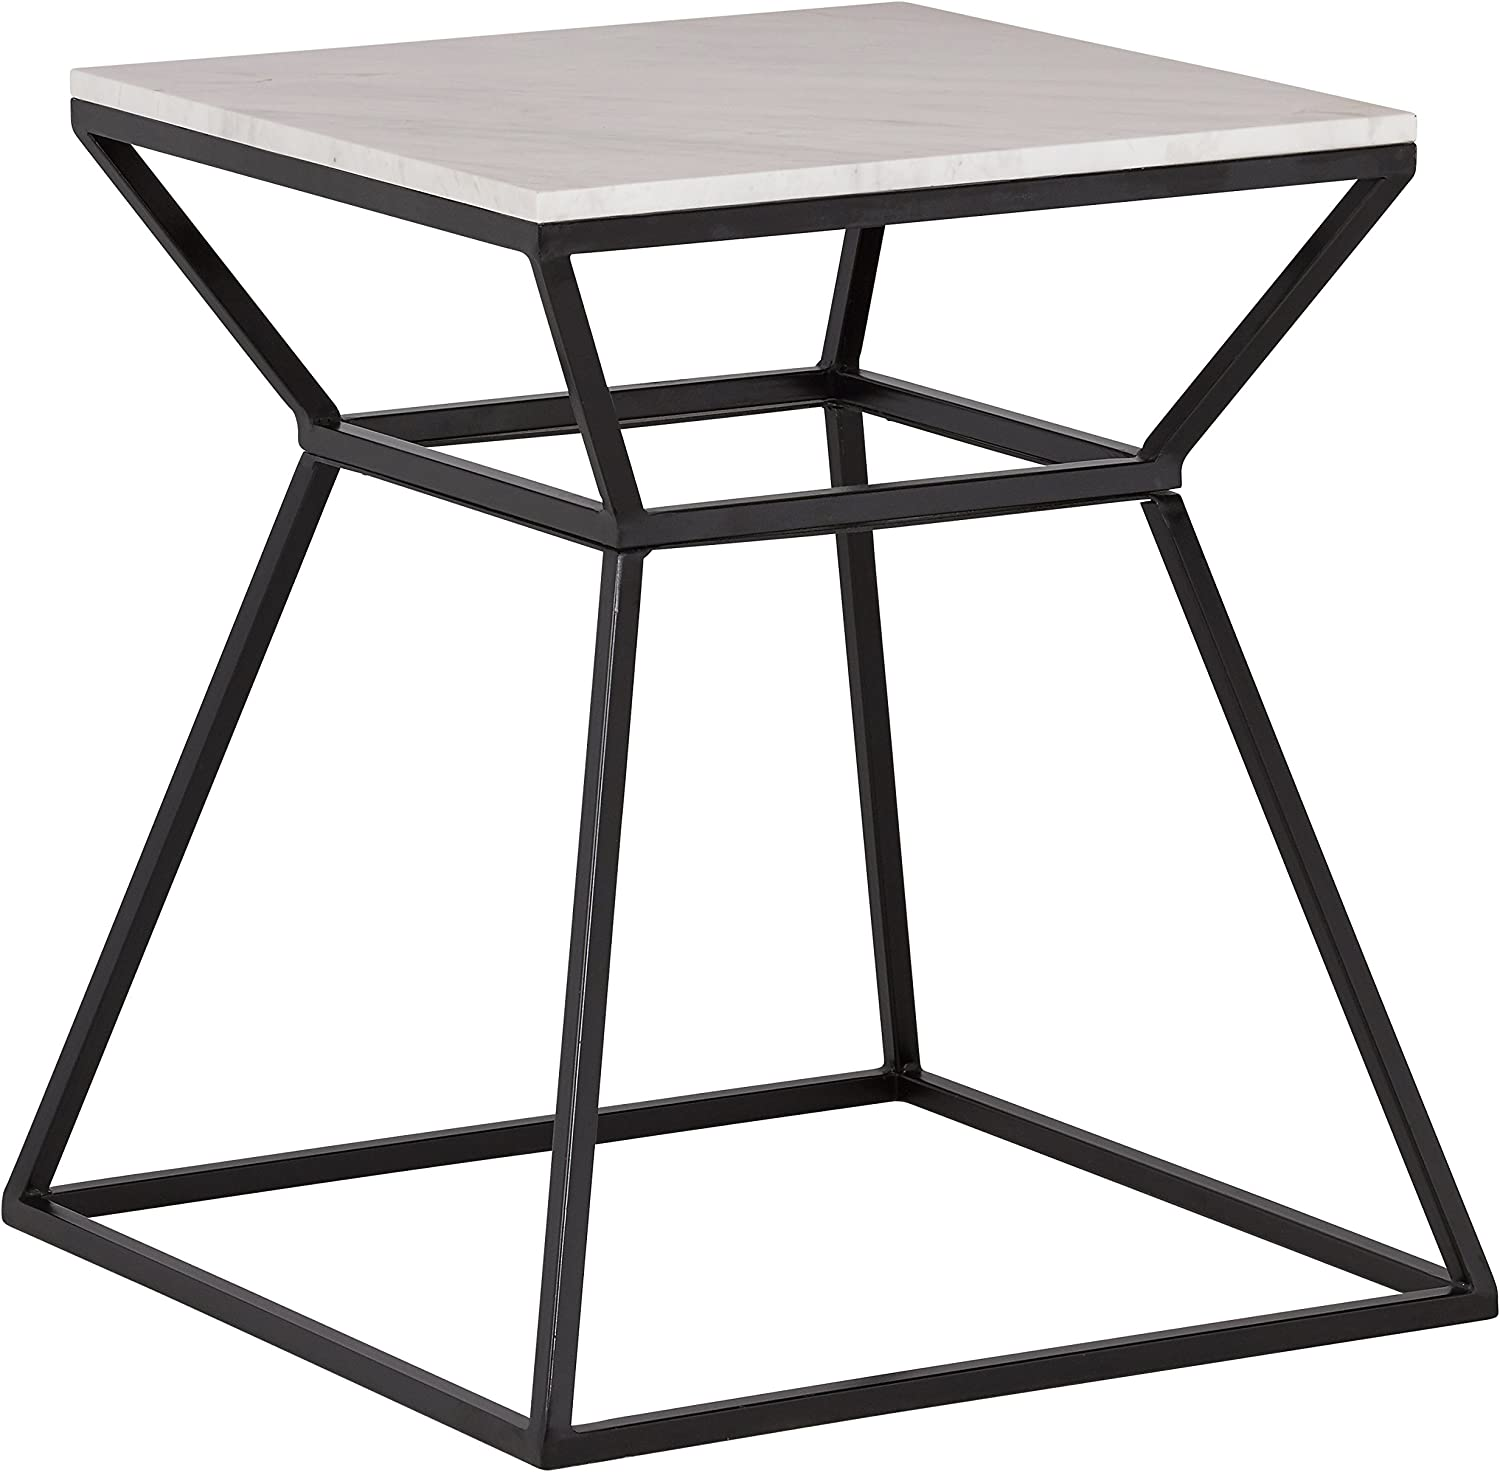 "Rivet Mid-Century Modern White Marble and Metal Side End Table, 22"", Black & Marble"